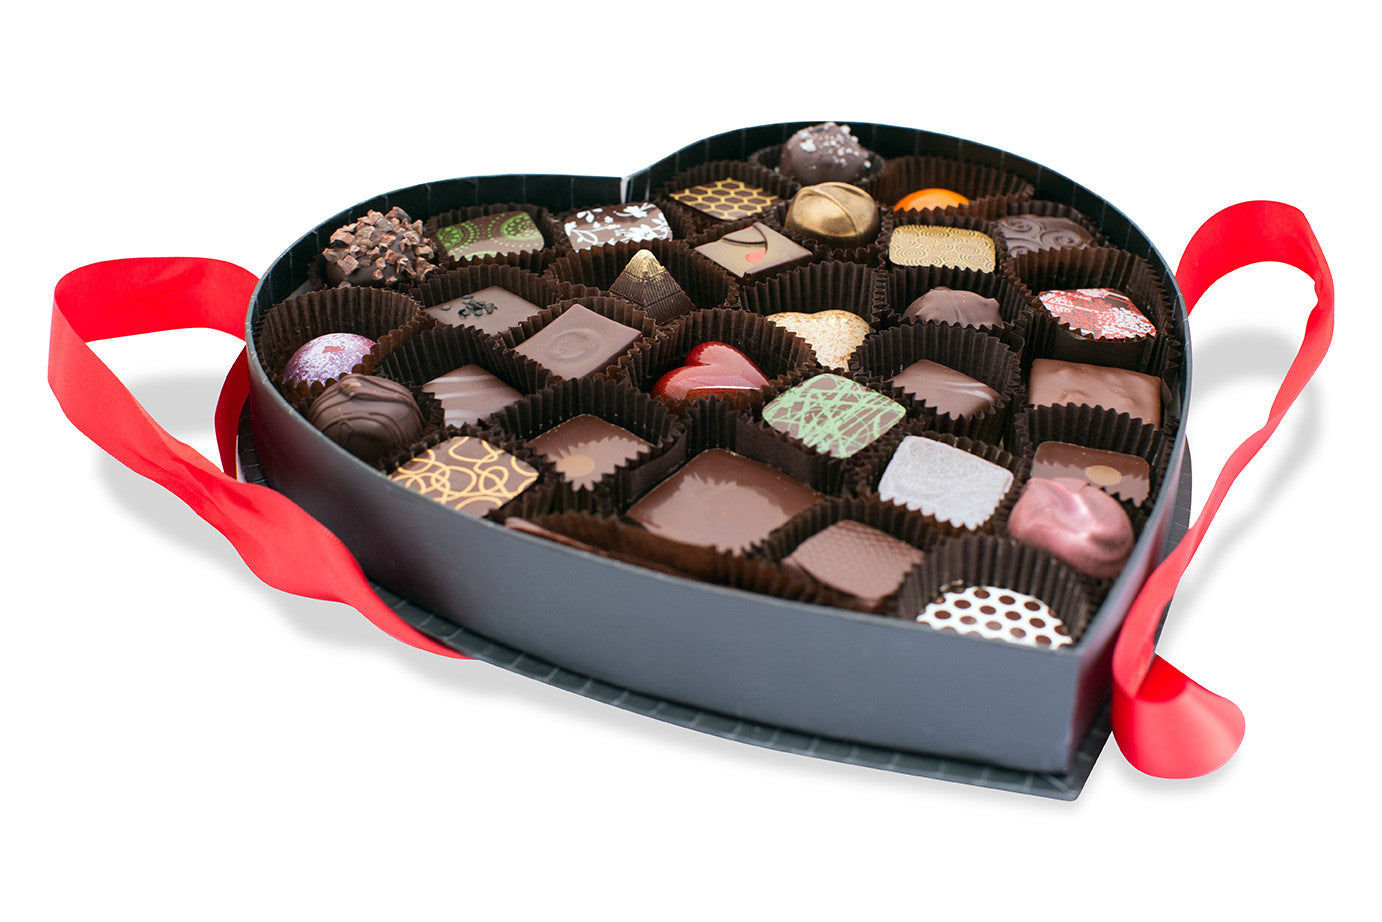 Big Love Heart Chocolate Box 32 pc - Pick Me Up Chocolate